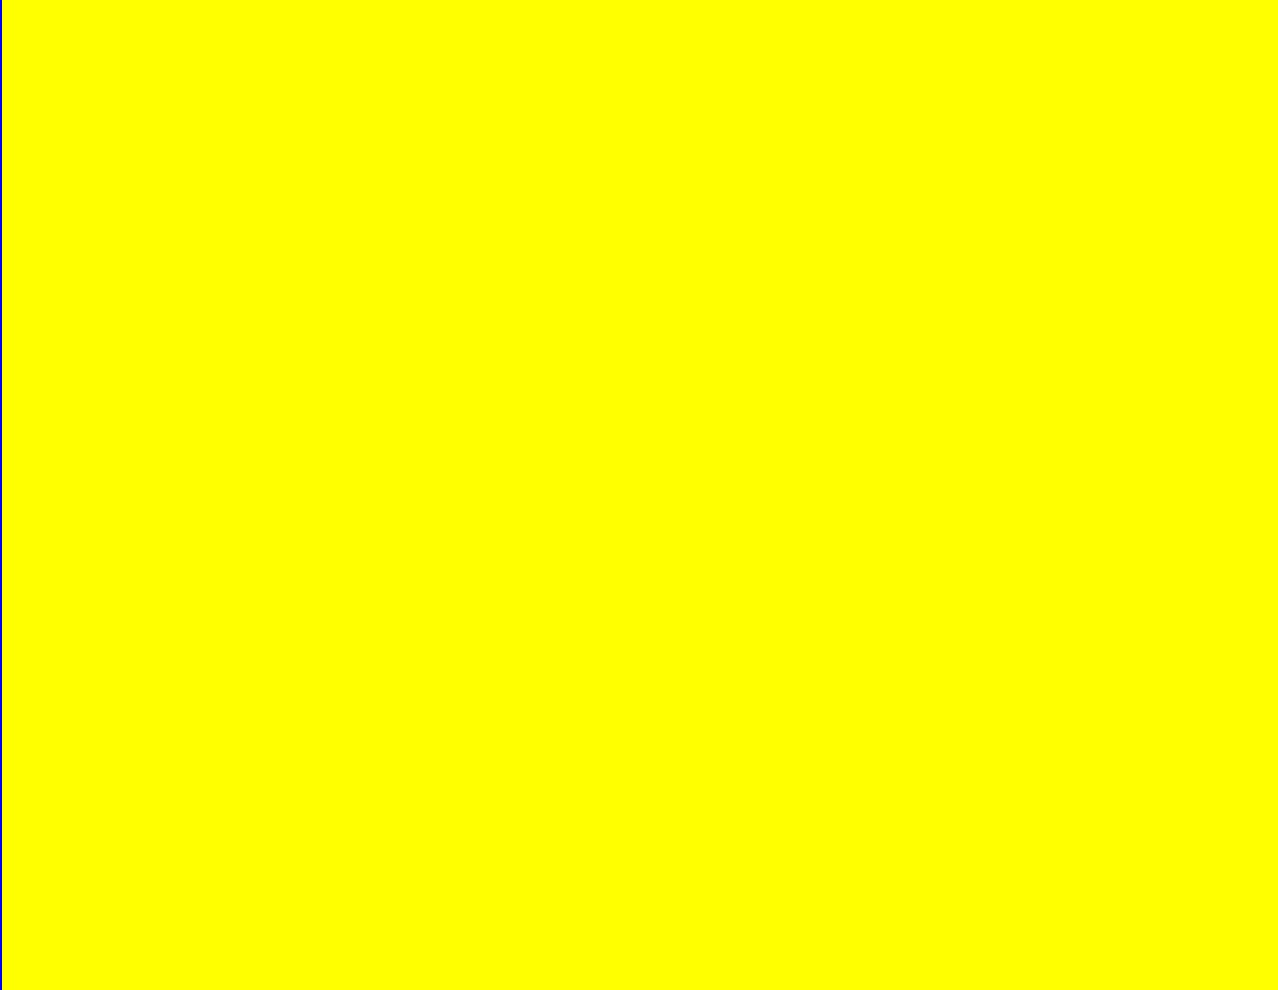 Yellow rectangle